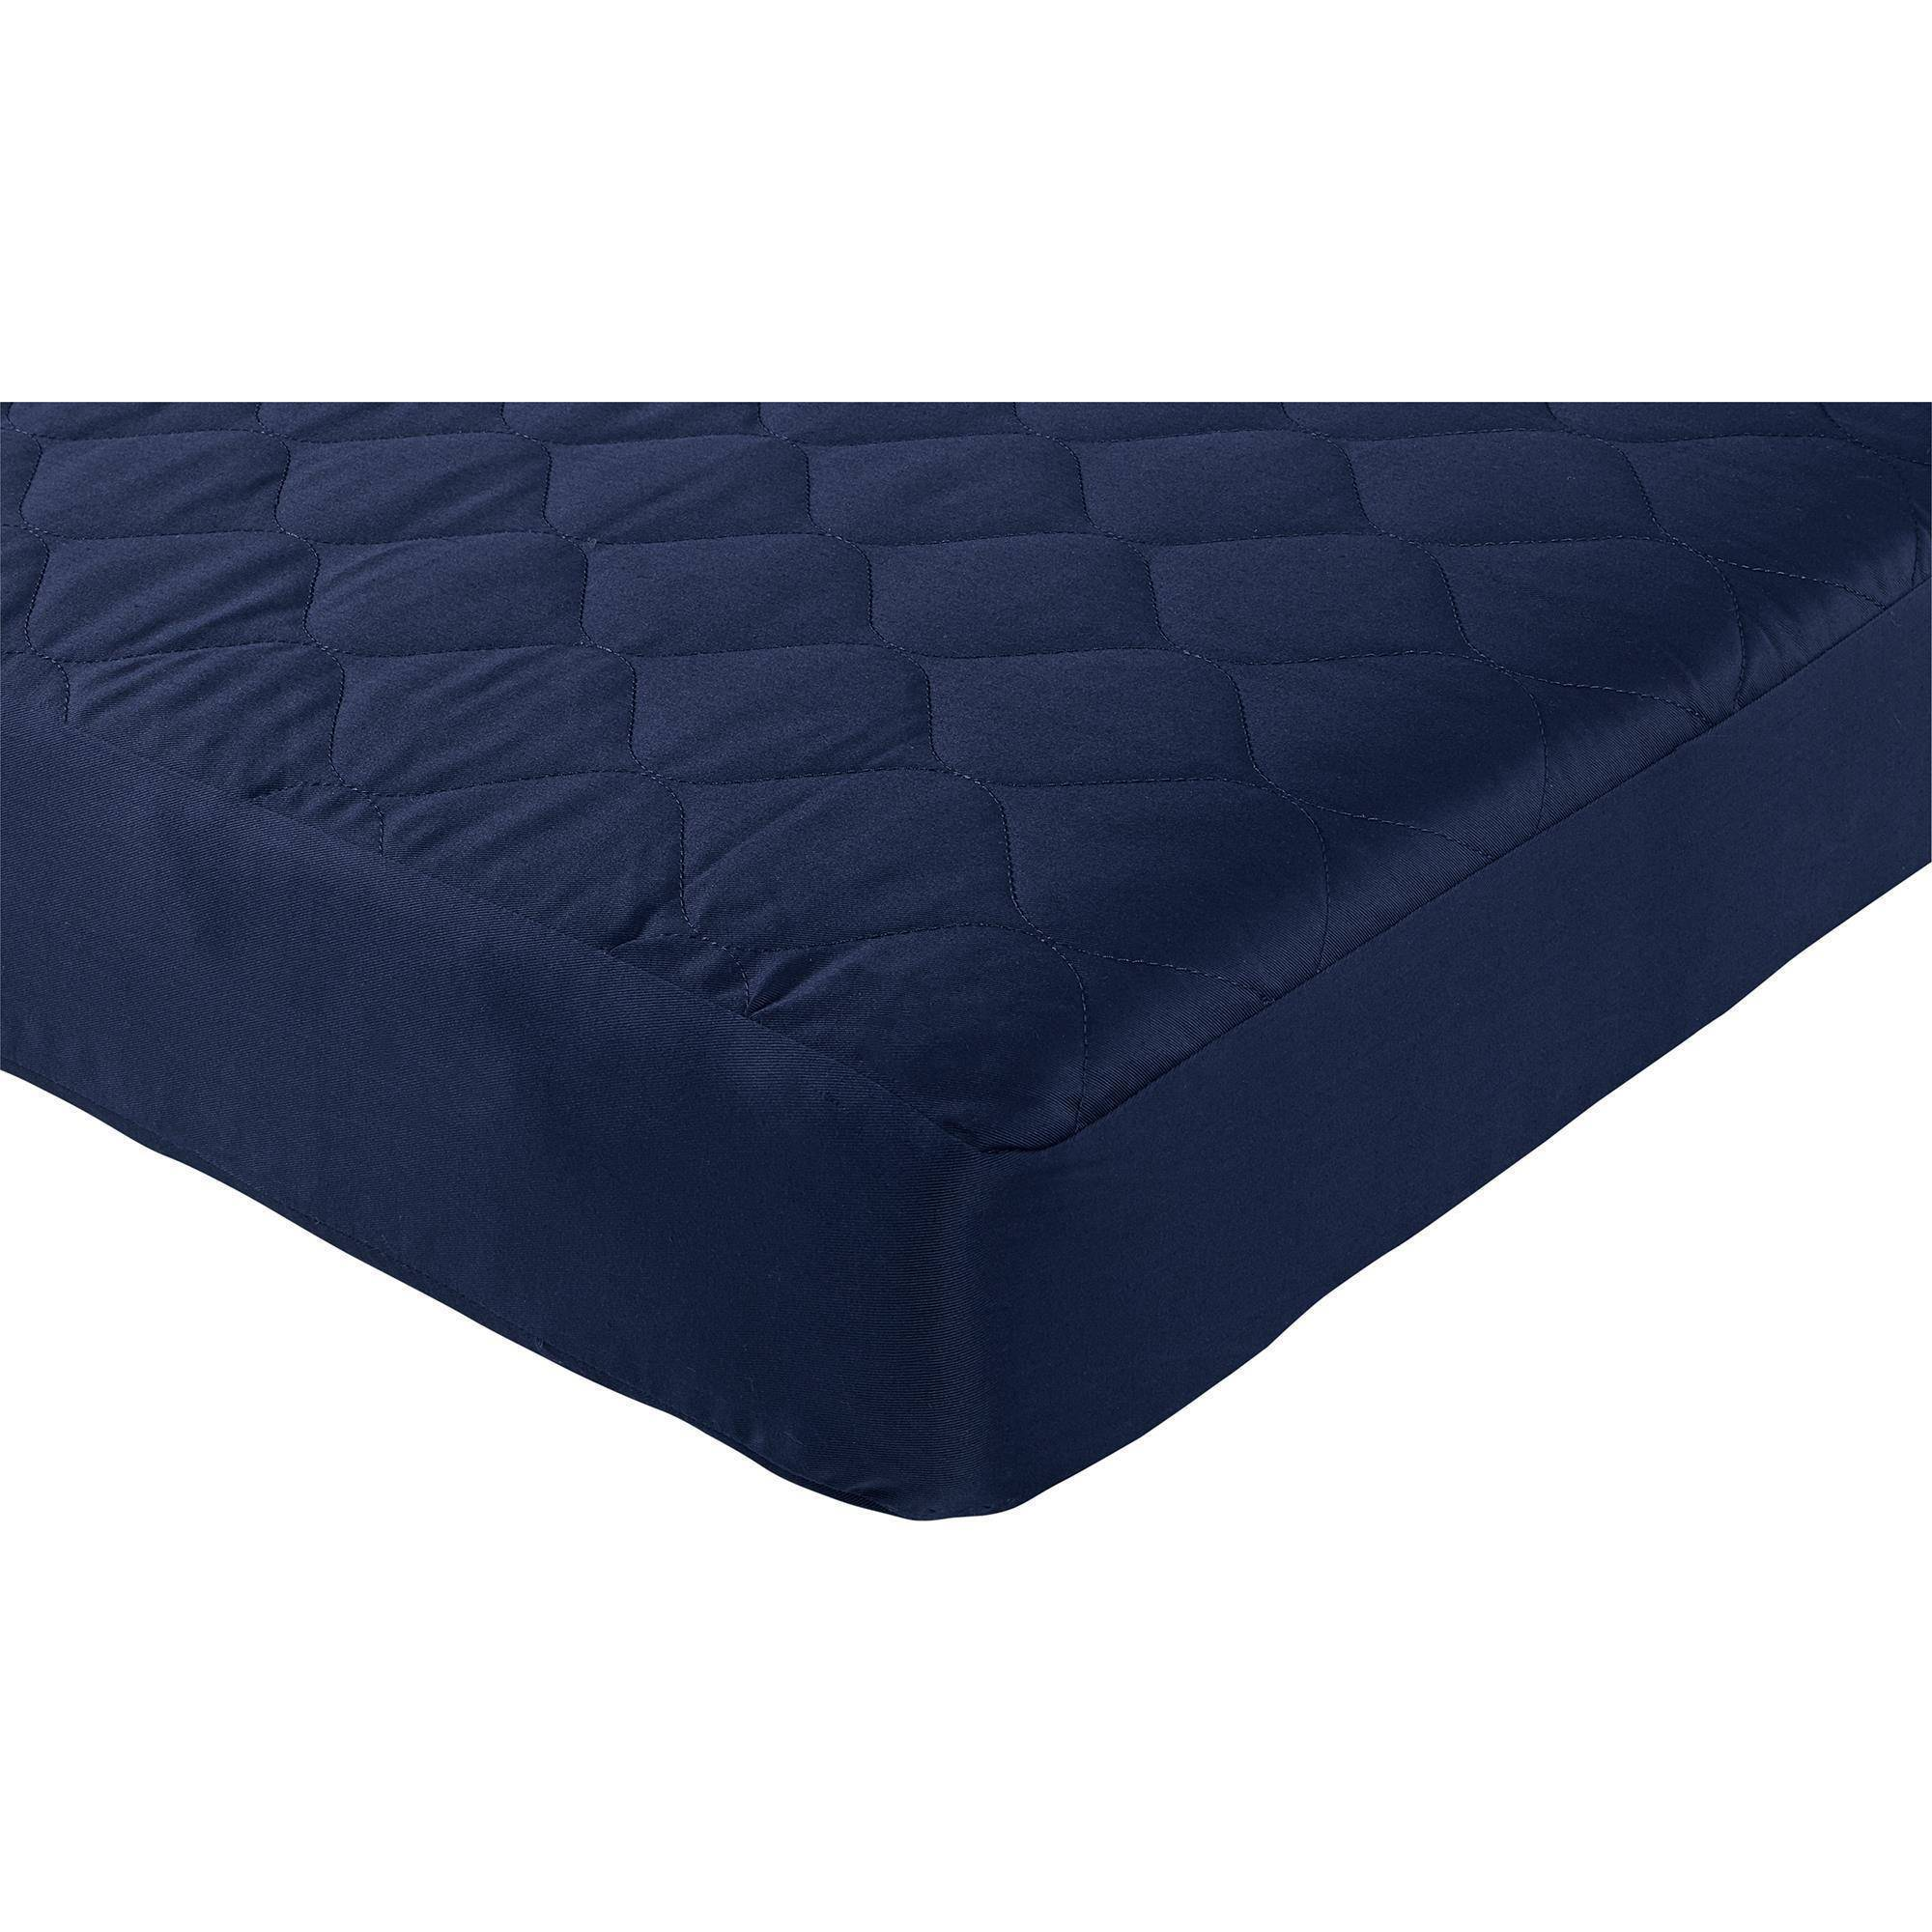 Dorel Home 6 Full Quilted Top Bunk Bed Mattress Navy Walmart Com